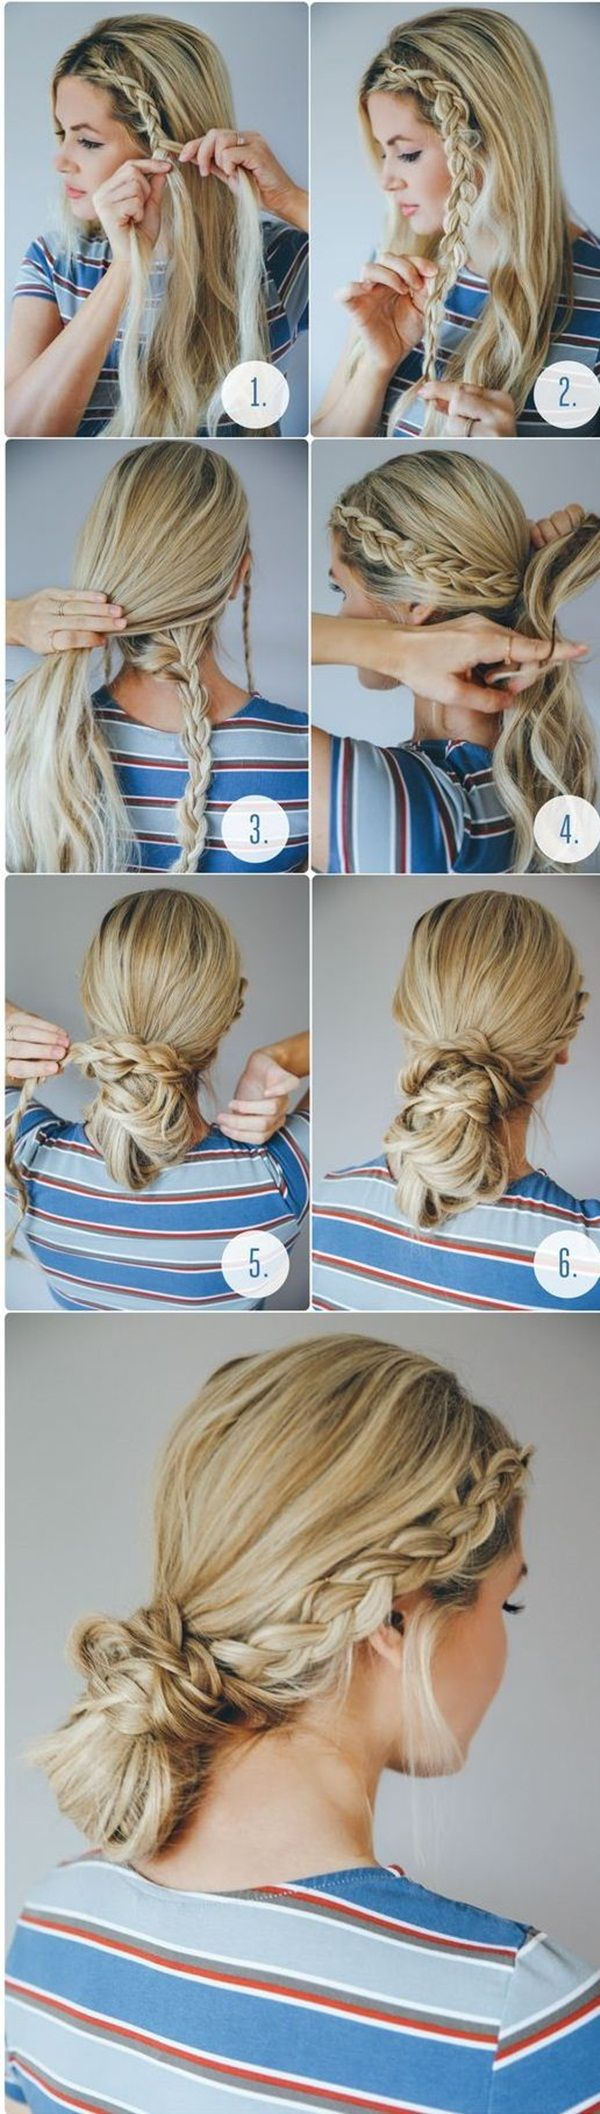 40 Easy Hairstyles for Schools to Try in 2016 | www.barneyfrank.n...